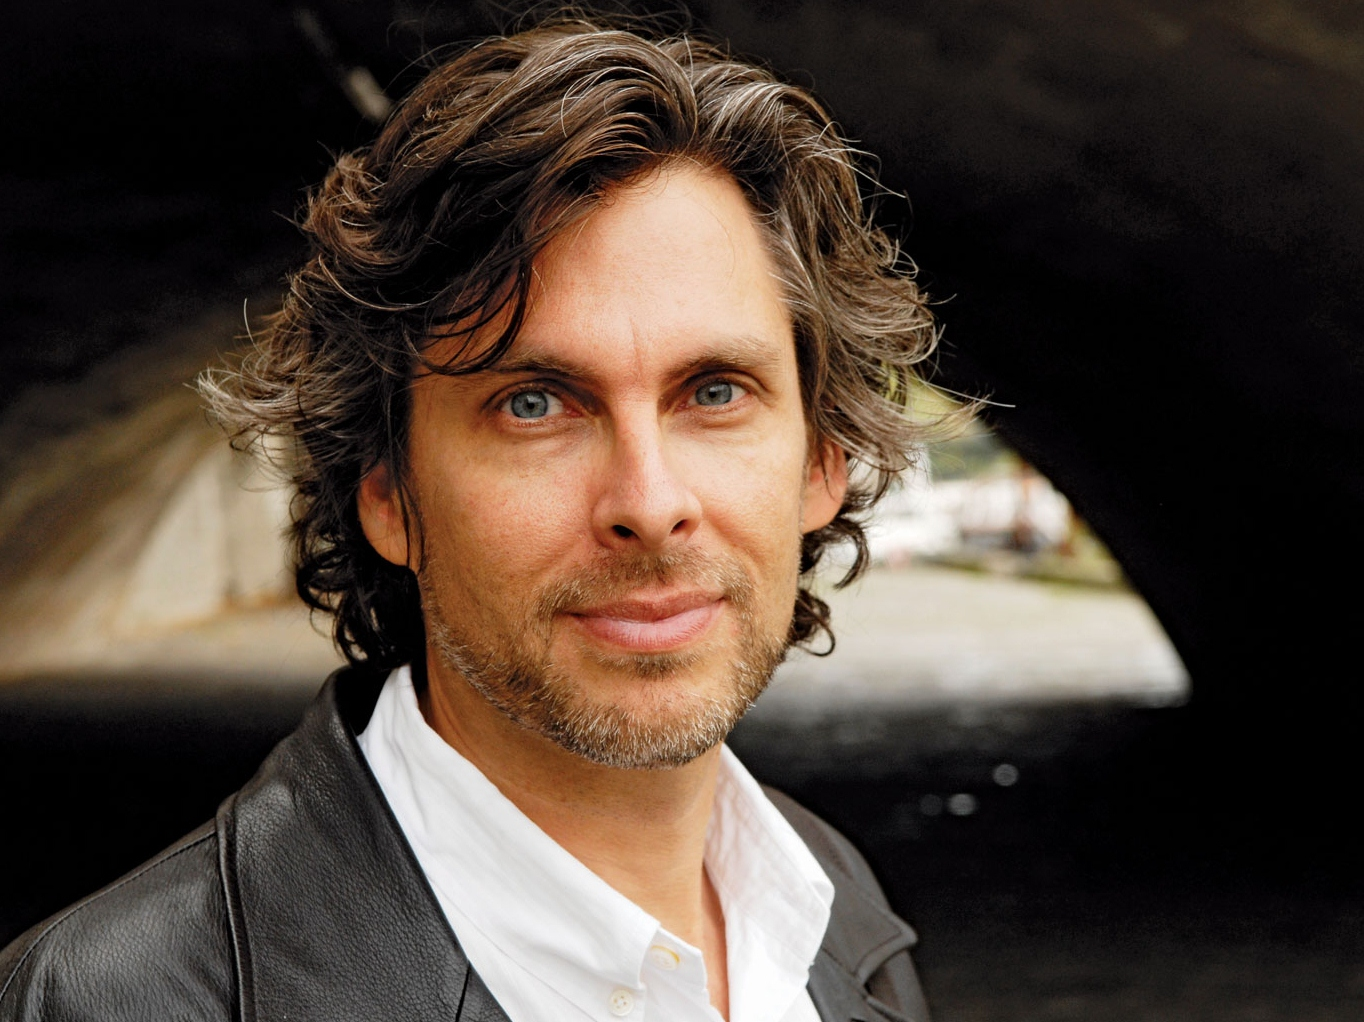 'Telegraph Avenue' Review: Chabon Braves Cultural Fault Lines in Smart New Novel